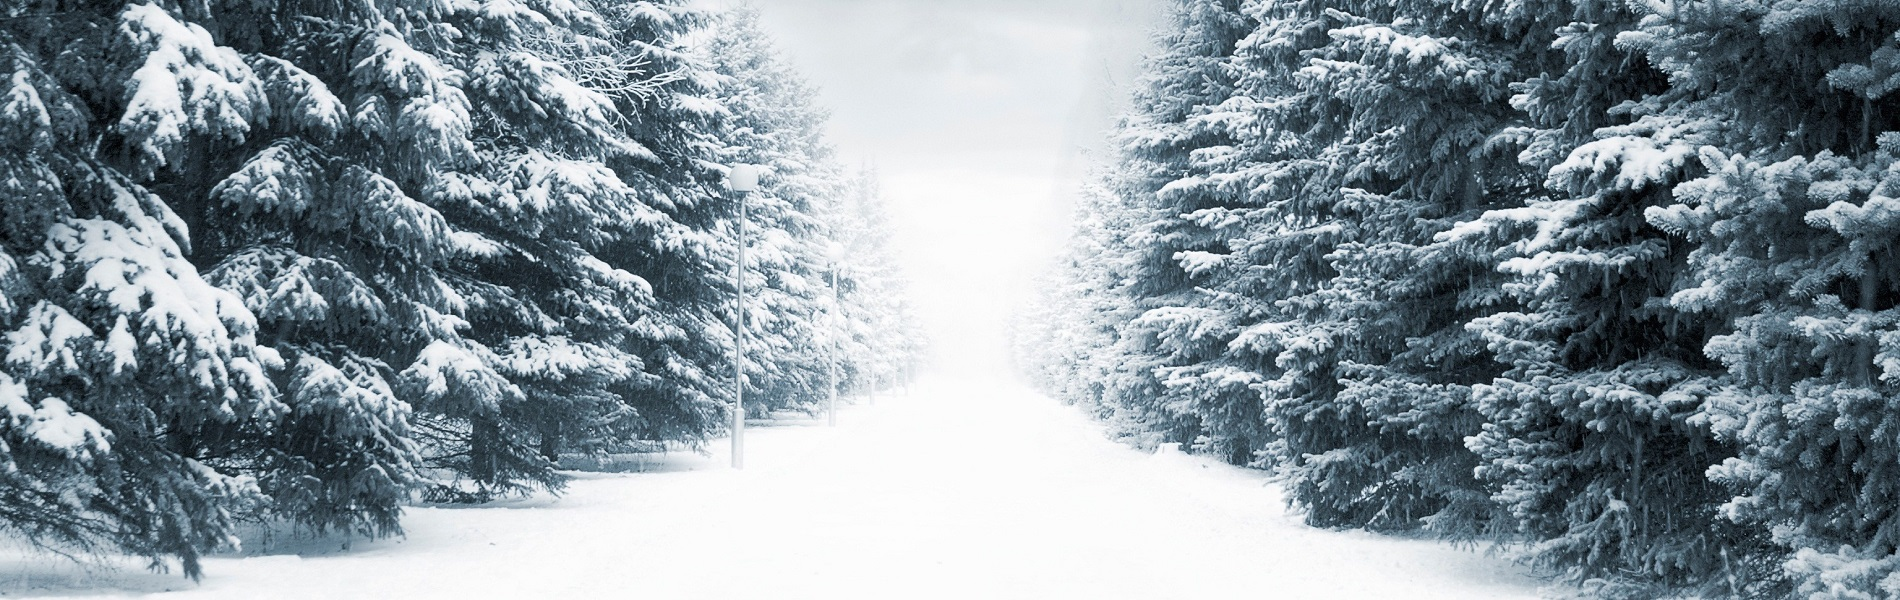 6910892-winter-snow-hd-backgrounds